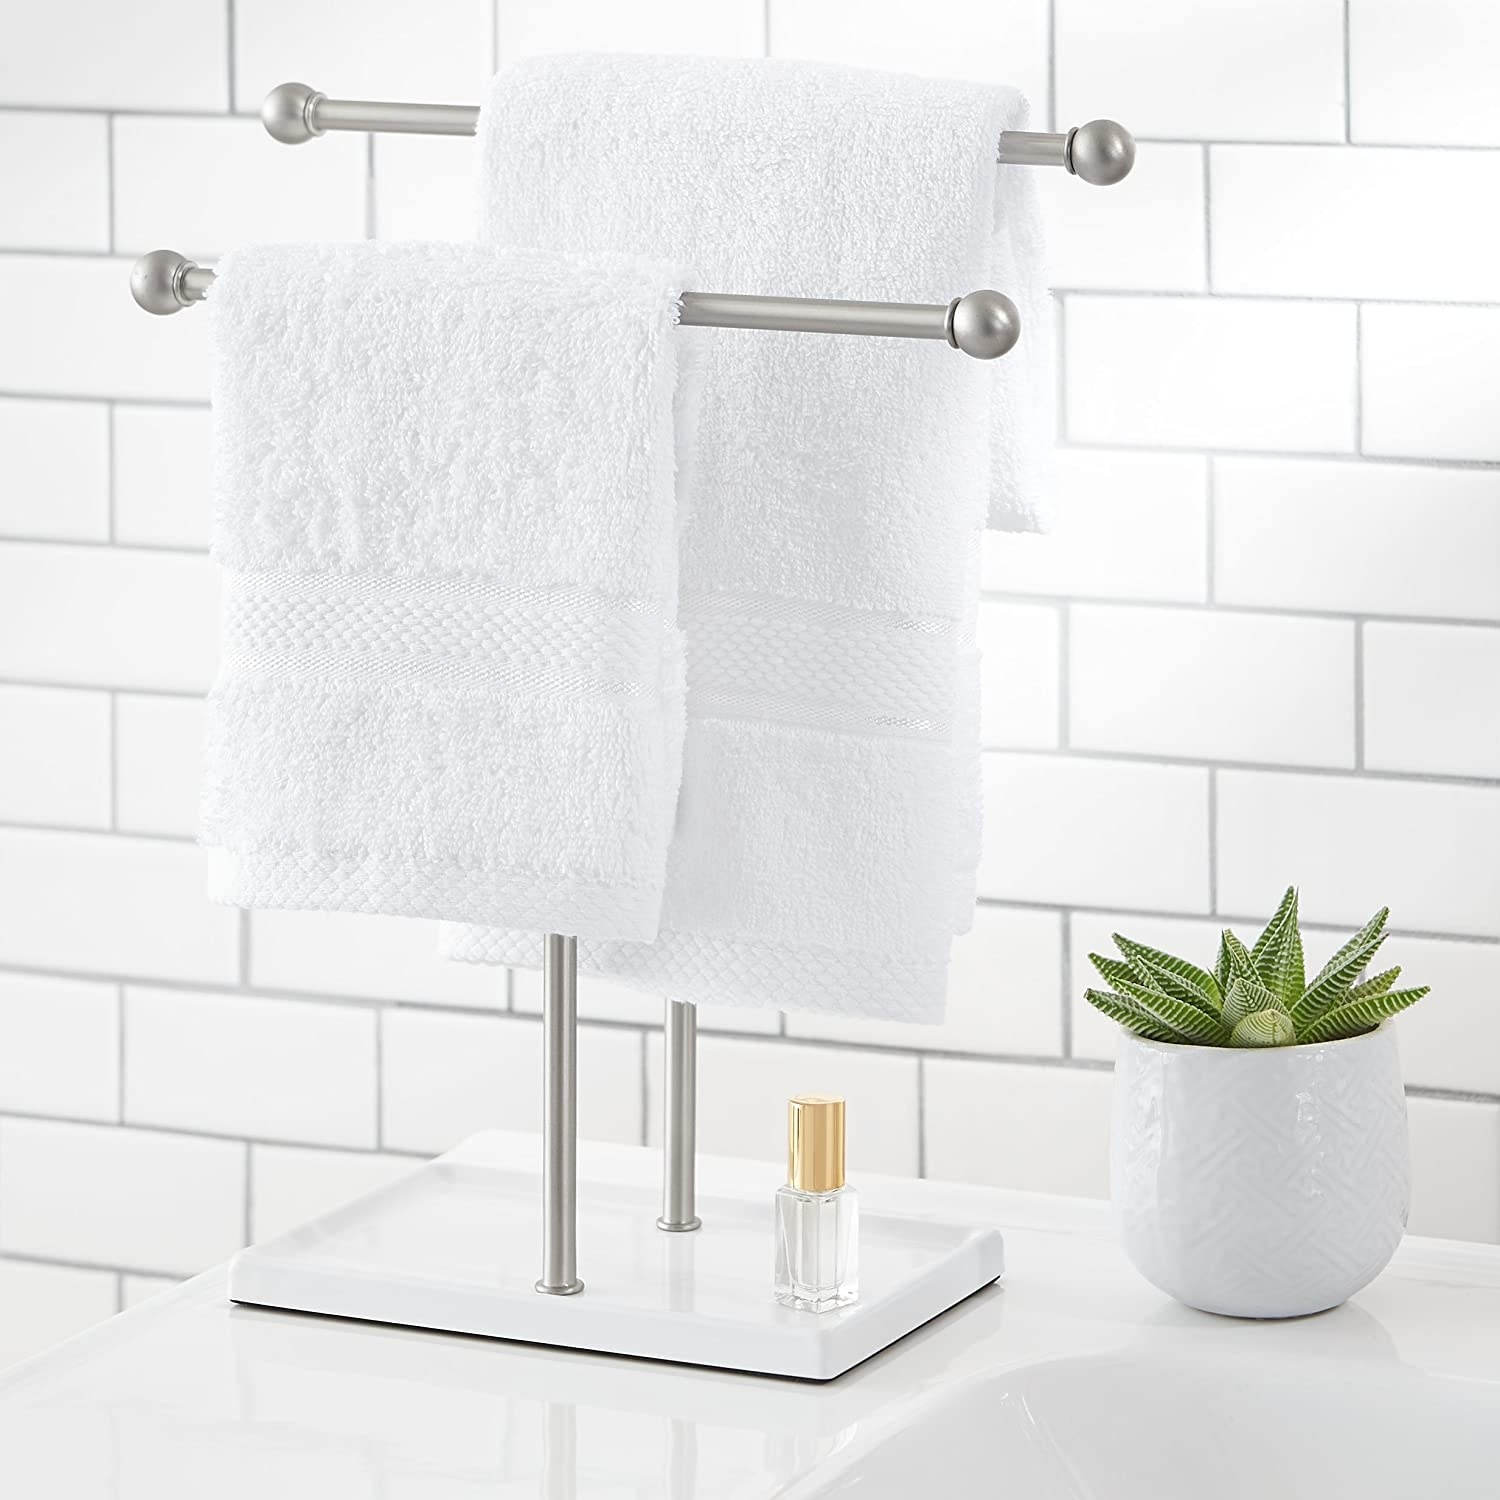 Small nickel double rod with a white base and two towels hanging from it